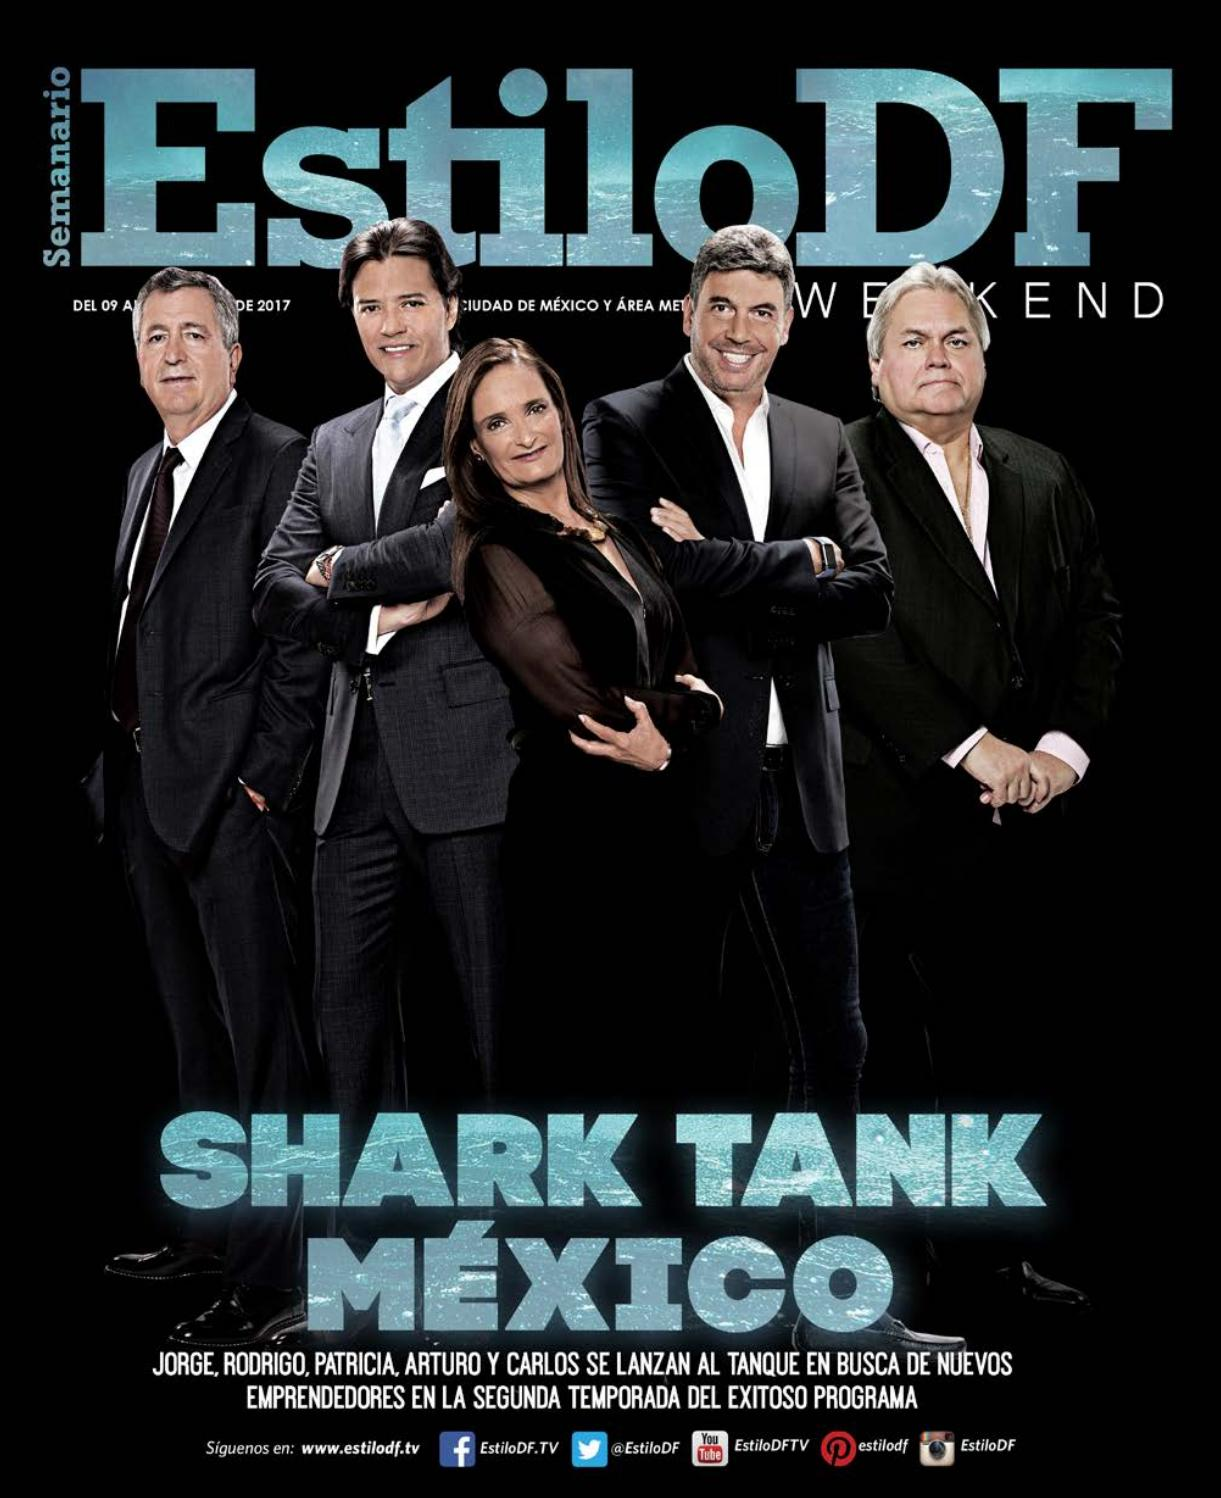 Estilo Df Weekend Shark Tank Mexico By Estilodf Issuu